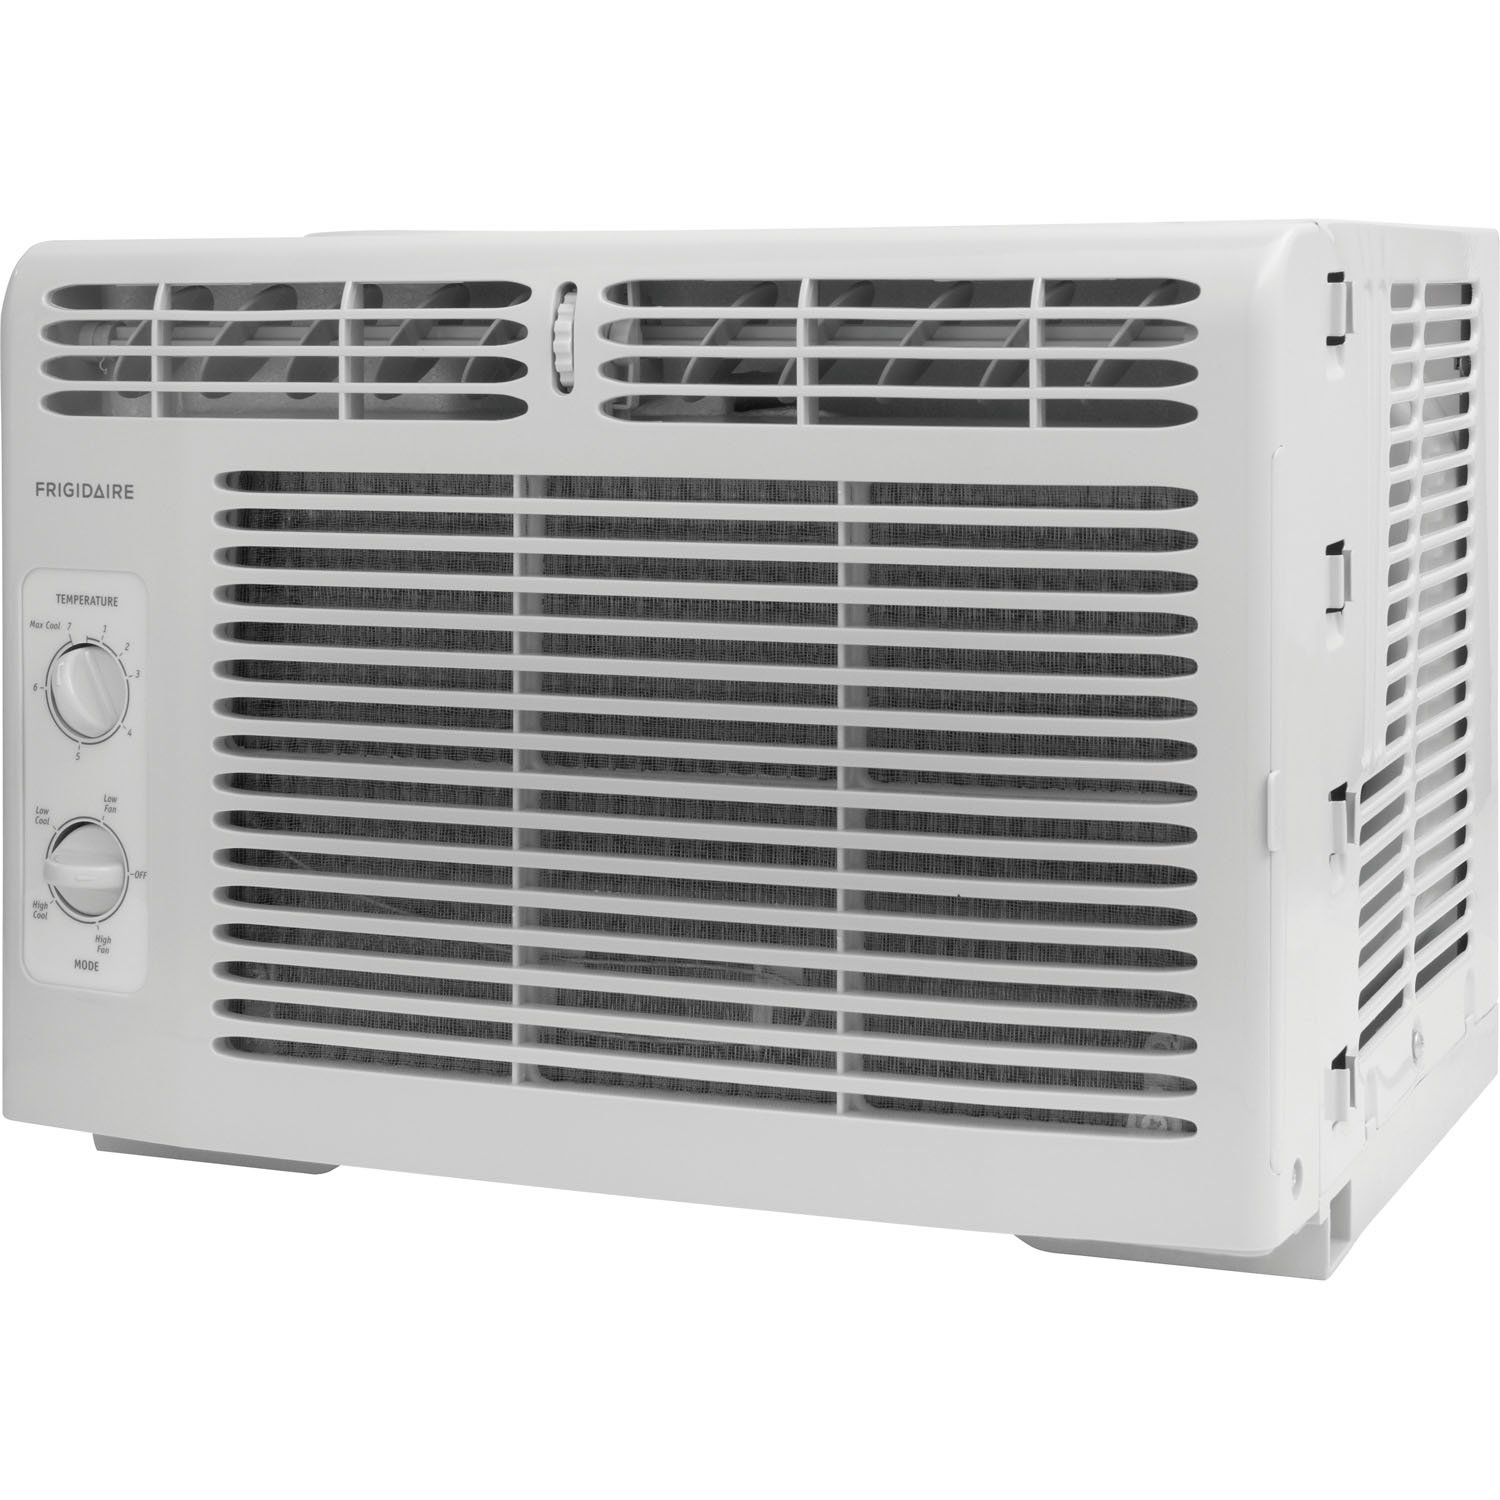 Frigidaire FFRA0511R1 5, 000 BTU 115V Window-Mounted Mini-Compact Air Conditioner with Mechanical Controls by Frigidaire (Image #6)